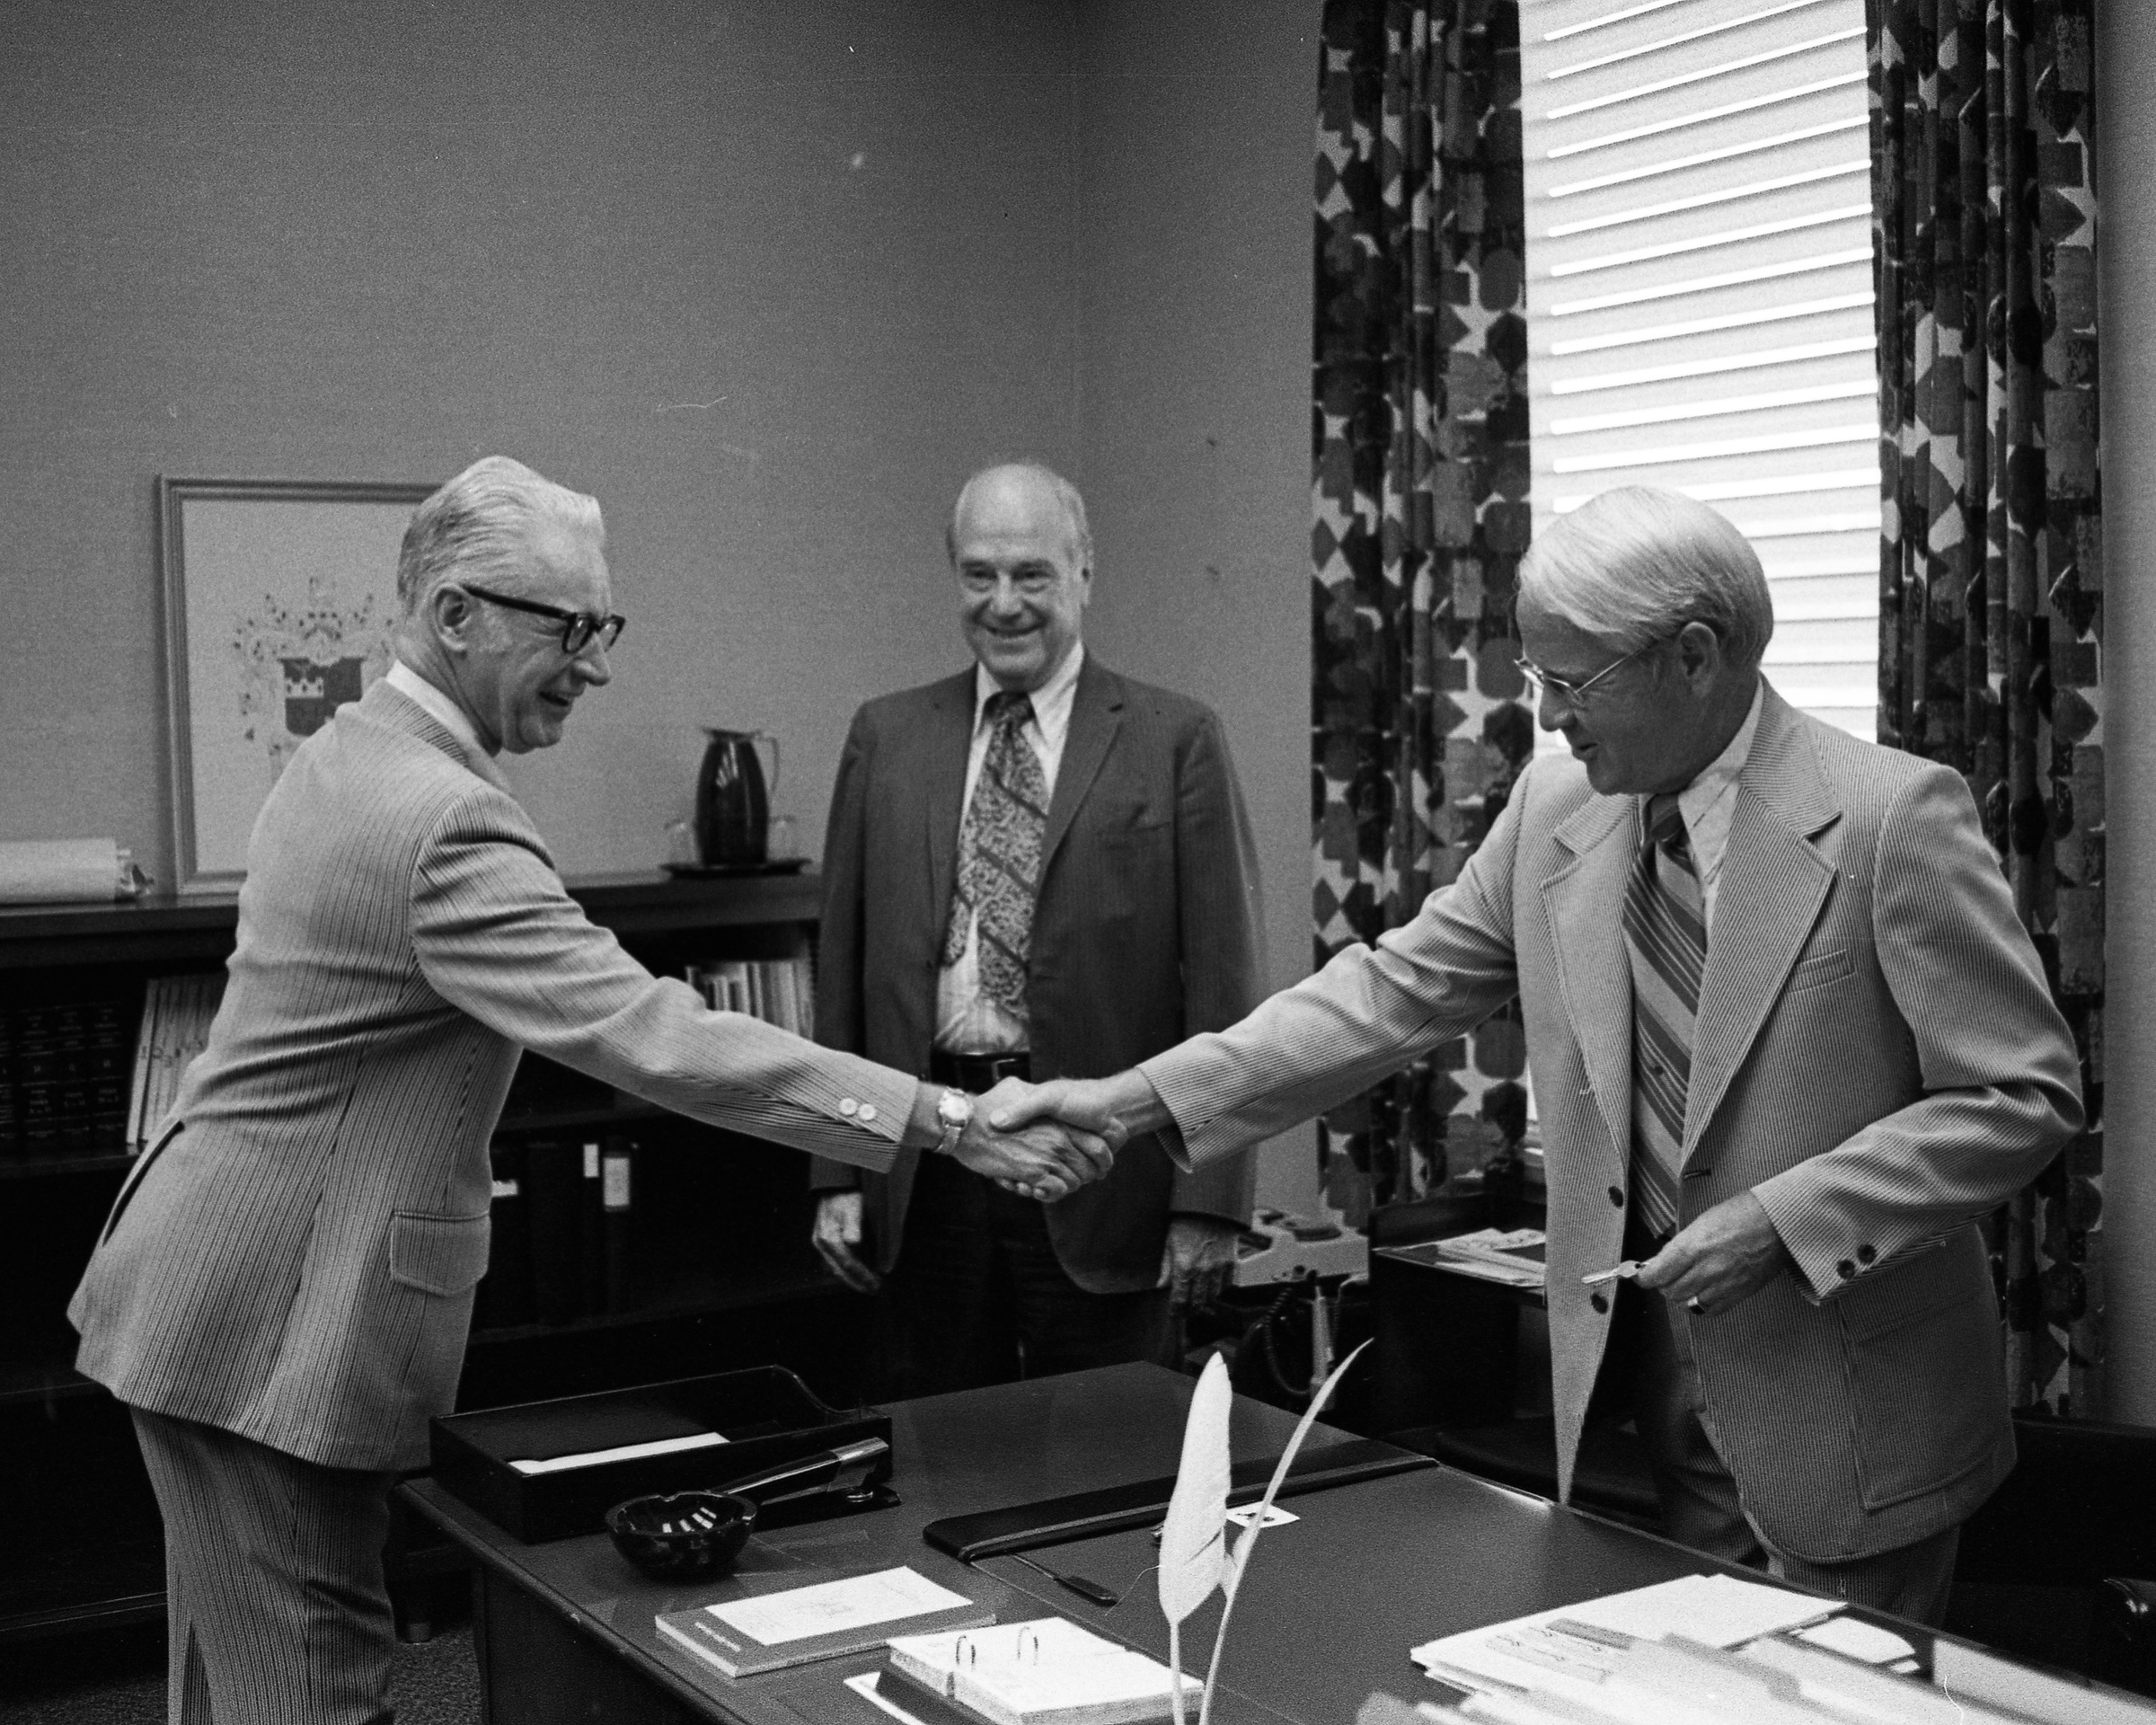 Vergil H. Dykstra assumes the presidency of George Mason University, July 2, 1973